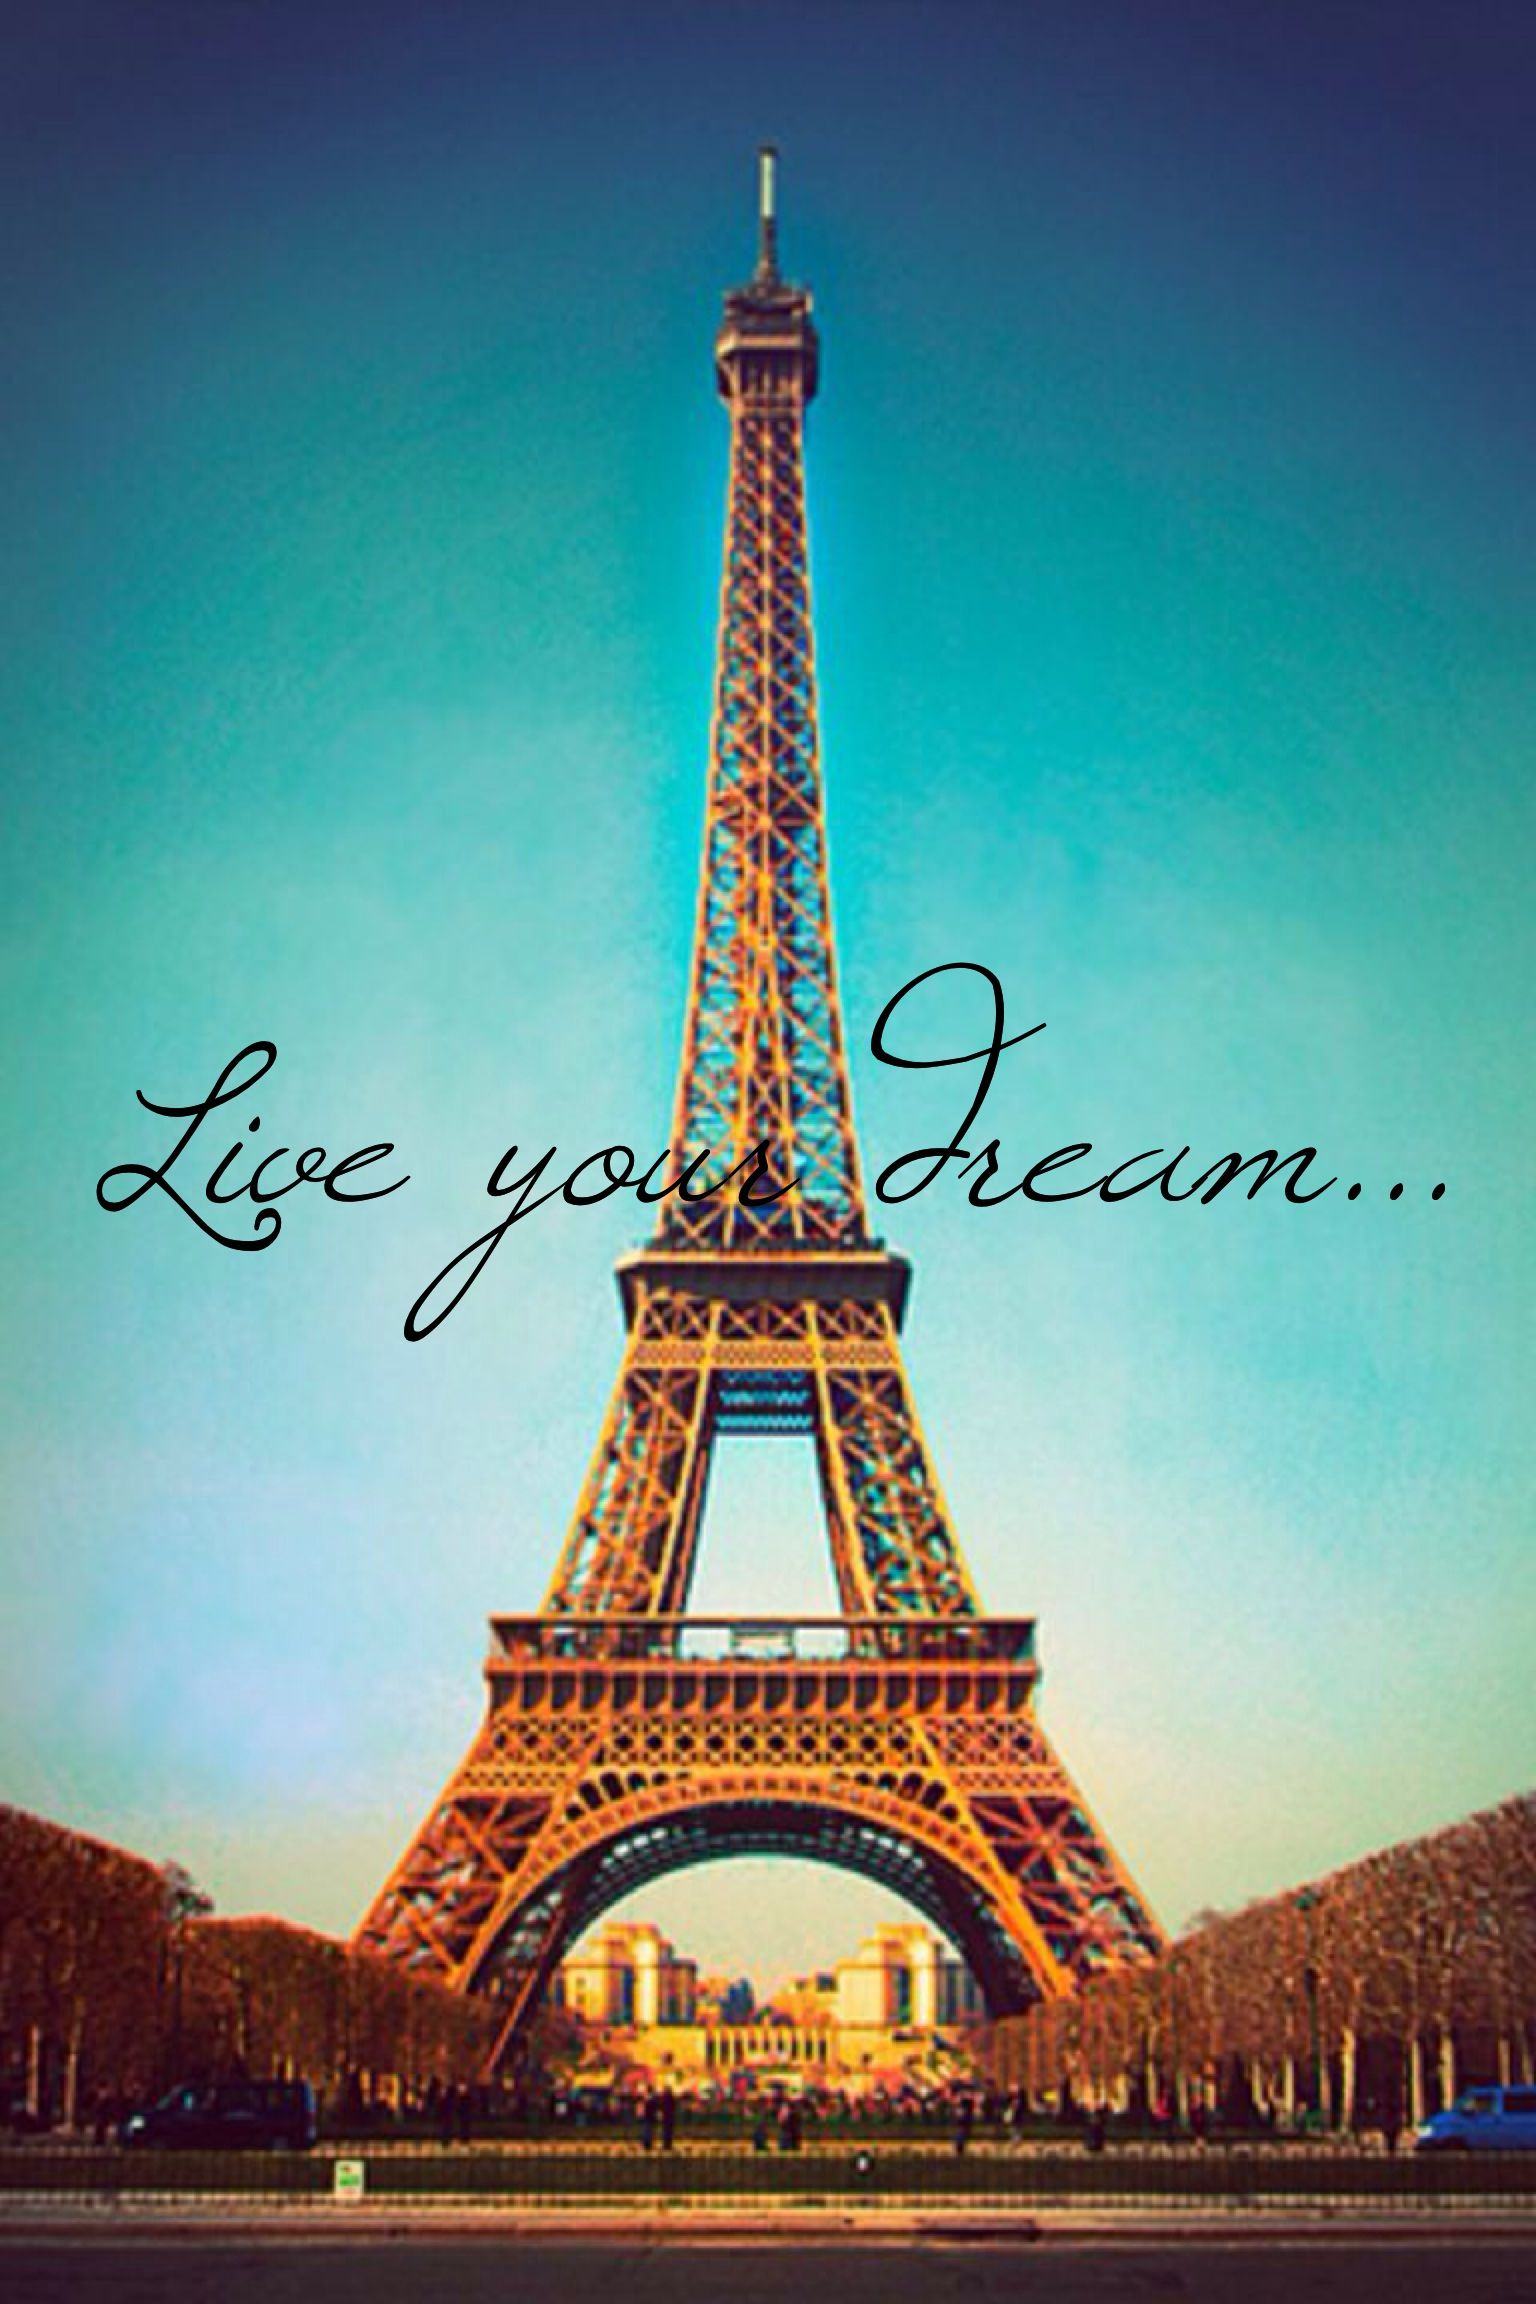 Cute Eiffel Tower Pic Live Your Dream